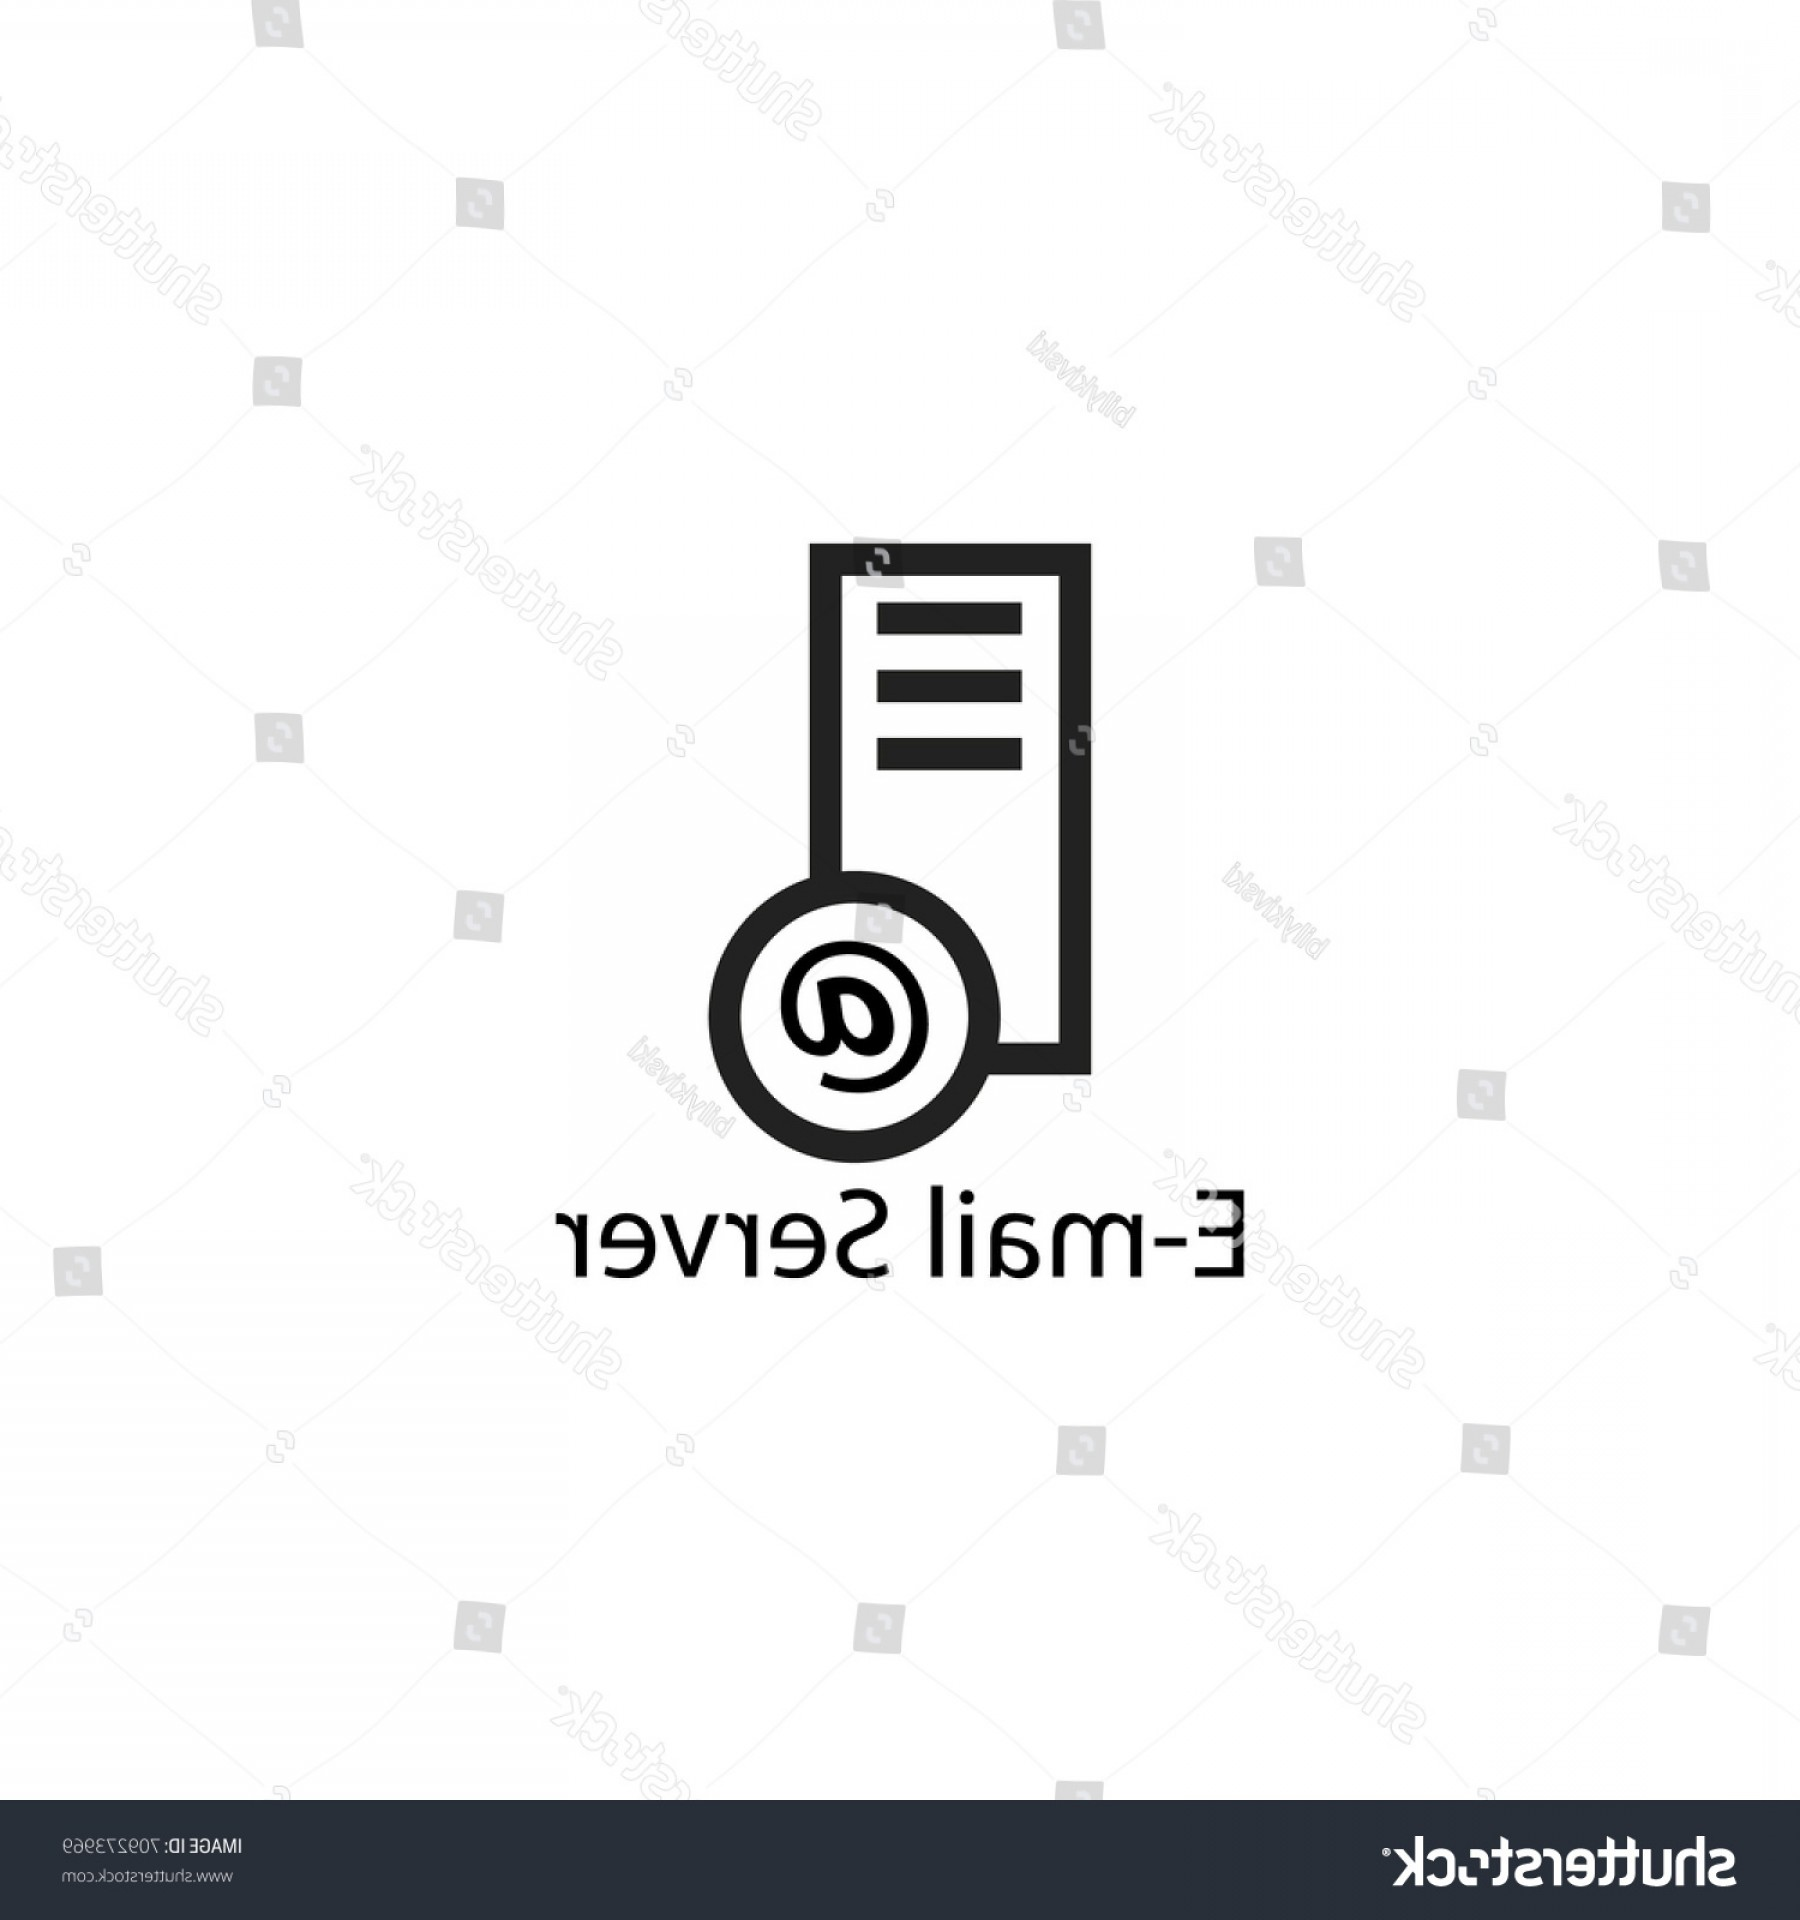 Vector Email Server: Email Server Image Vector Icon Design